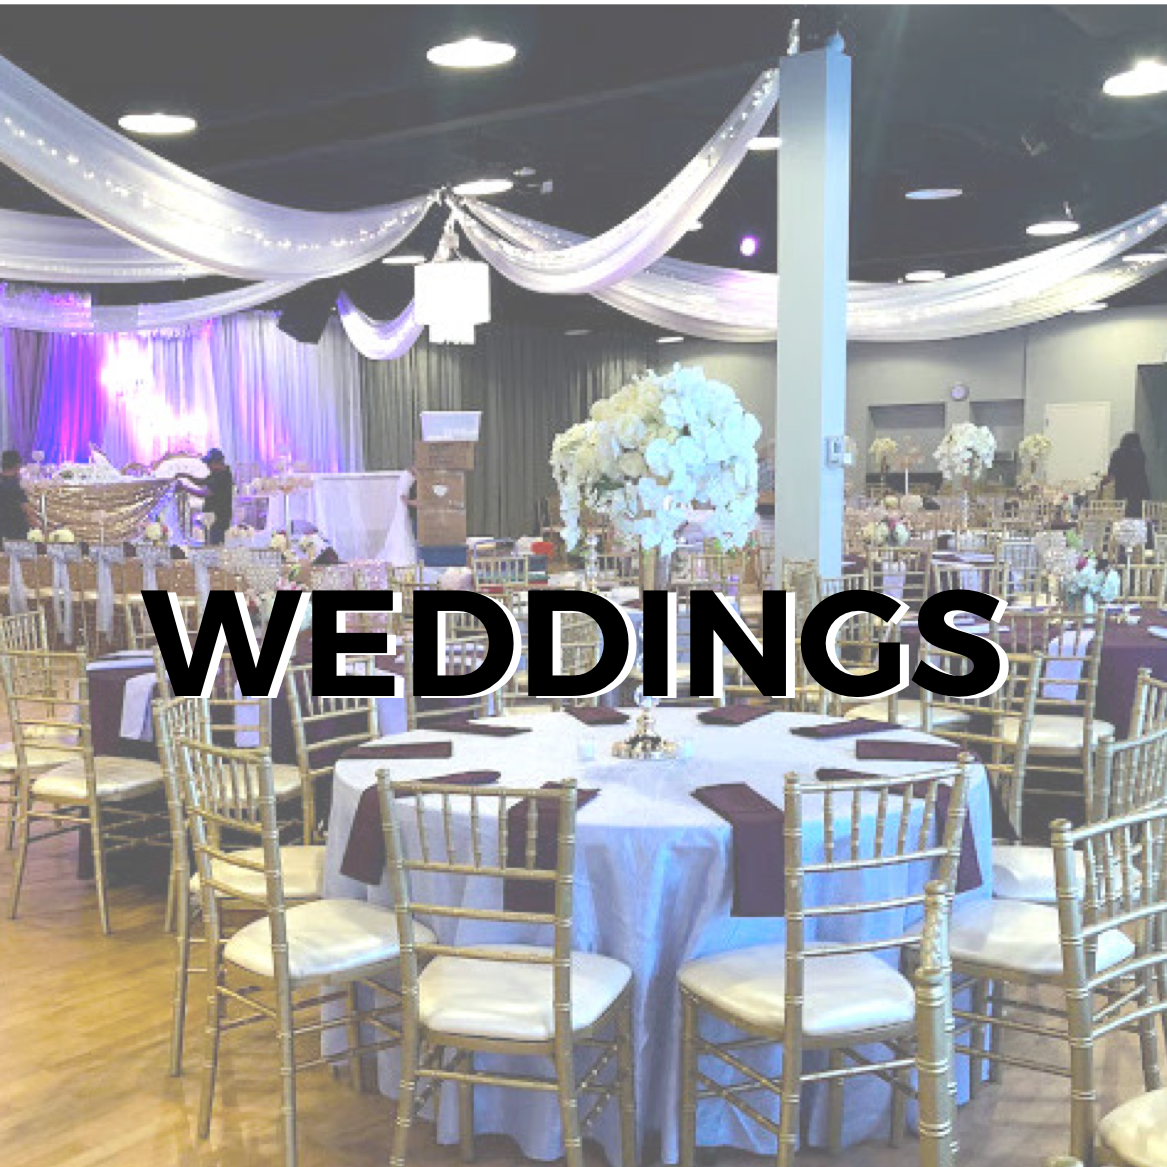 With flexible food and beverage policies, versatile layouts and a central and convenient location - Our venue spaces are perfect for Wedding ceremonies and receptions from 50 - 550 guests.    SEE MORE DETAILS >>